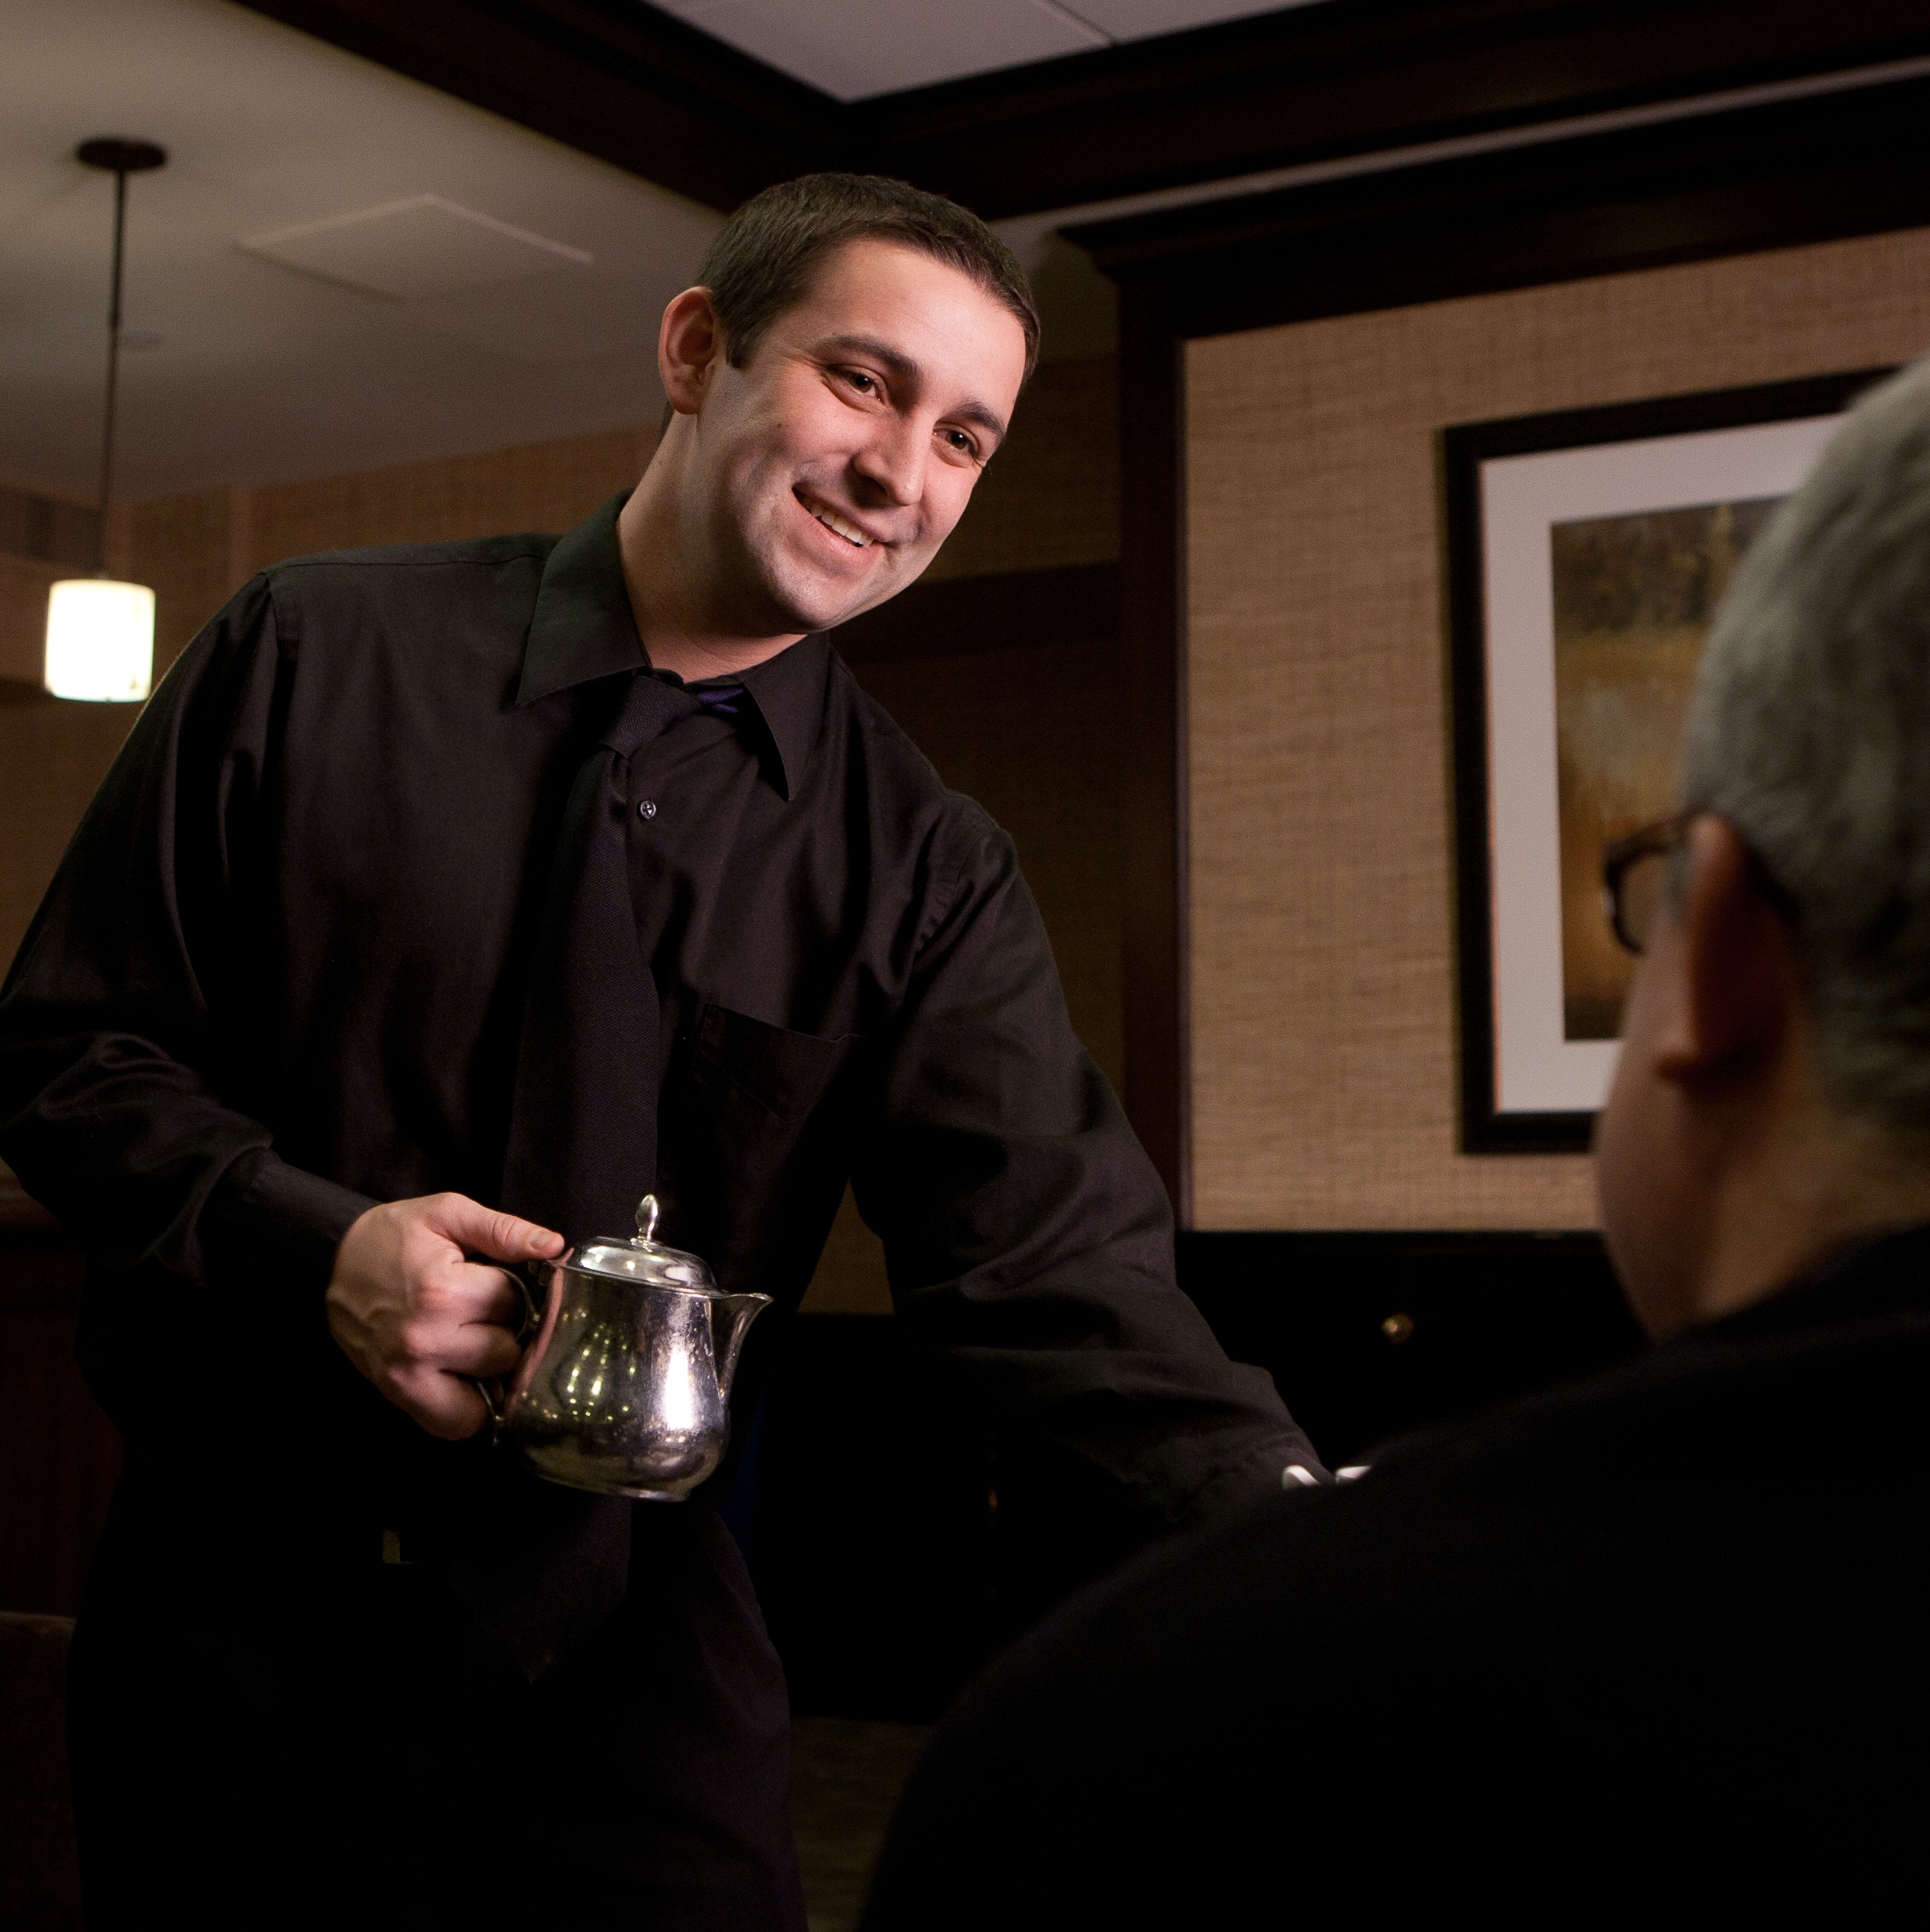 Universities & Colleges   Catering staff for faculty events, commencement, and alumni parties.   Learn More